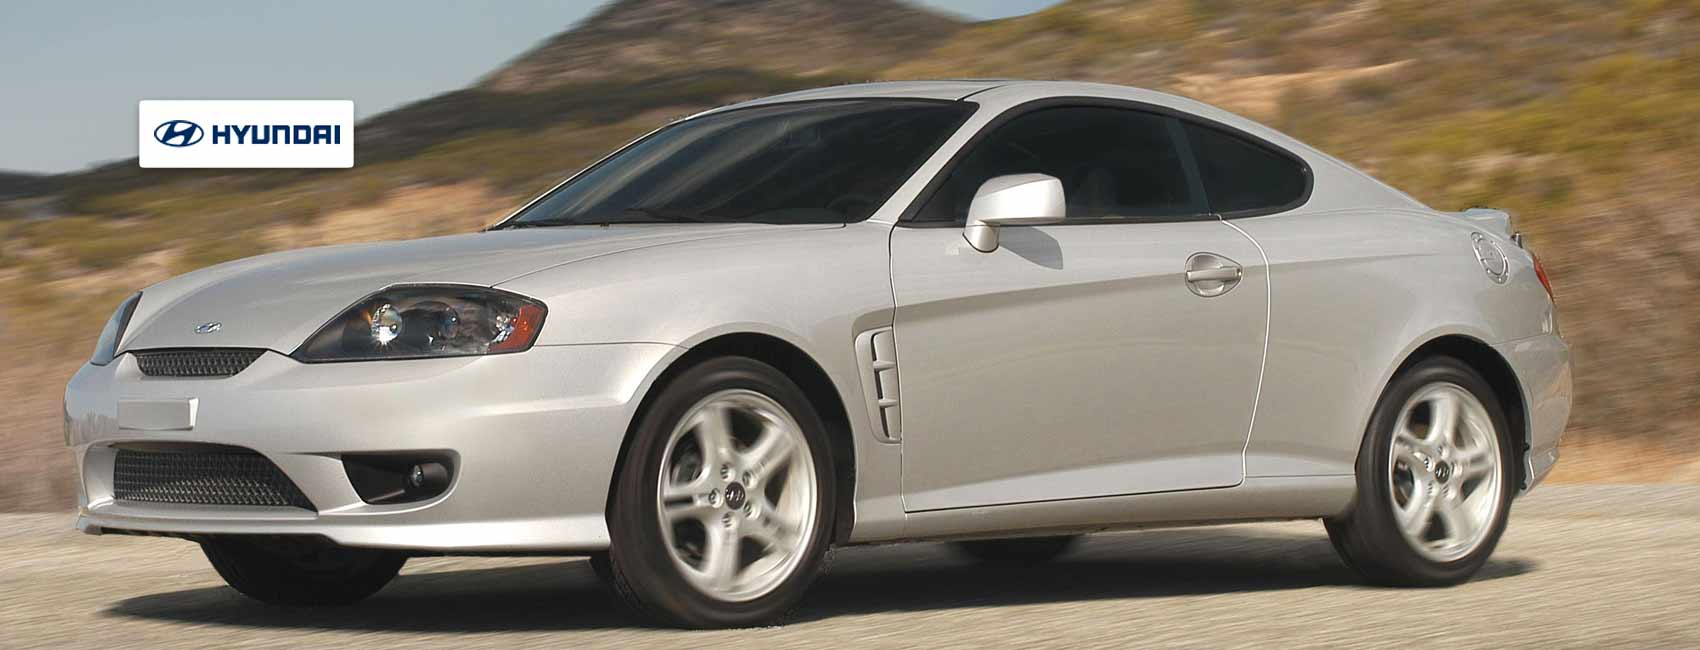 hyundai tiburon parts buy used hyundai tiburon parts online best price hyundai tiburon parts buy used